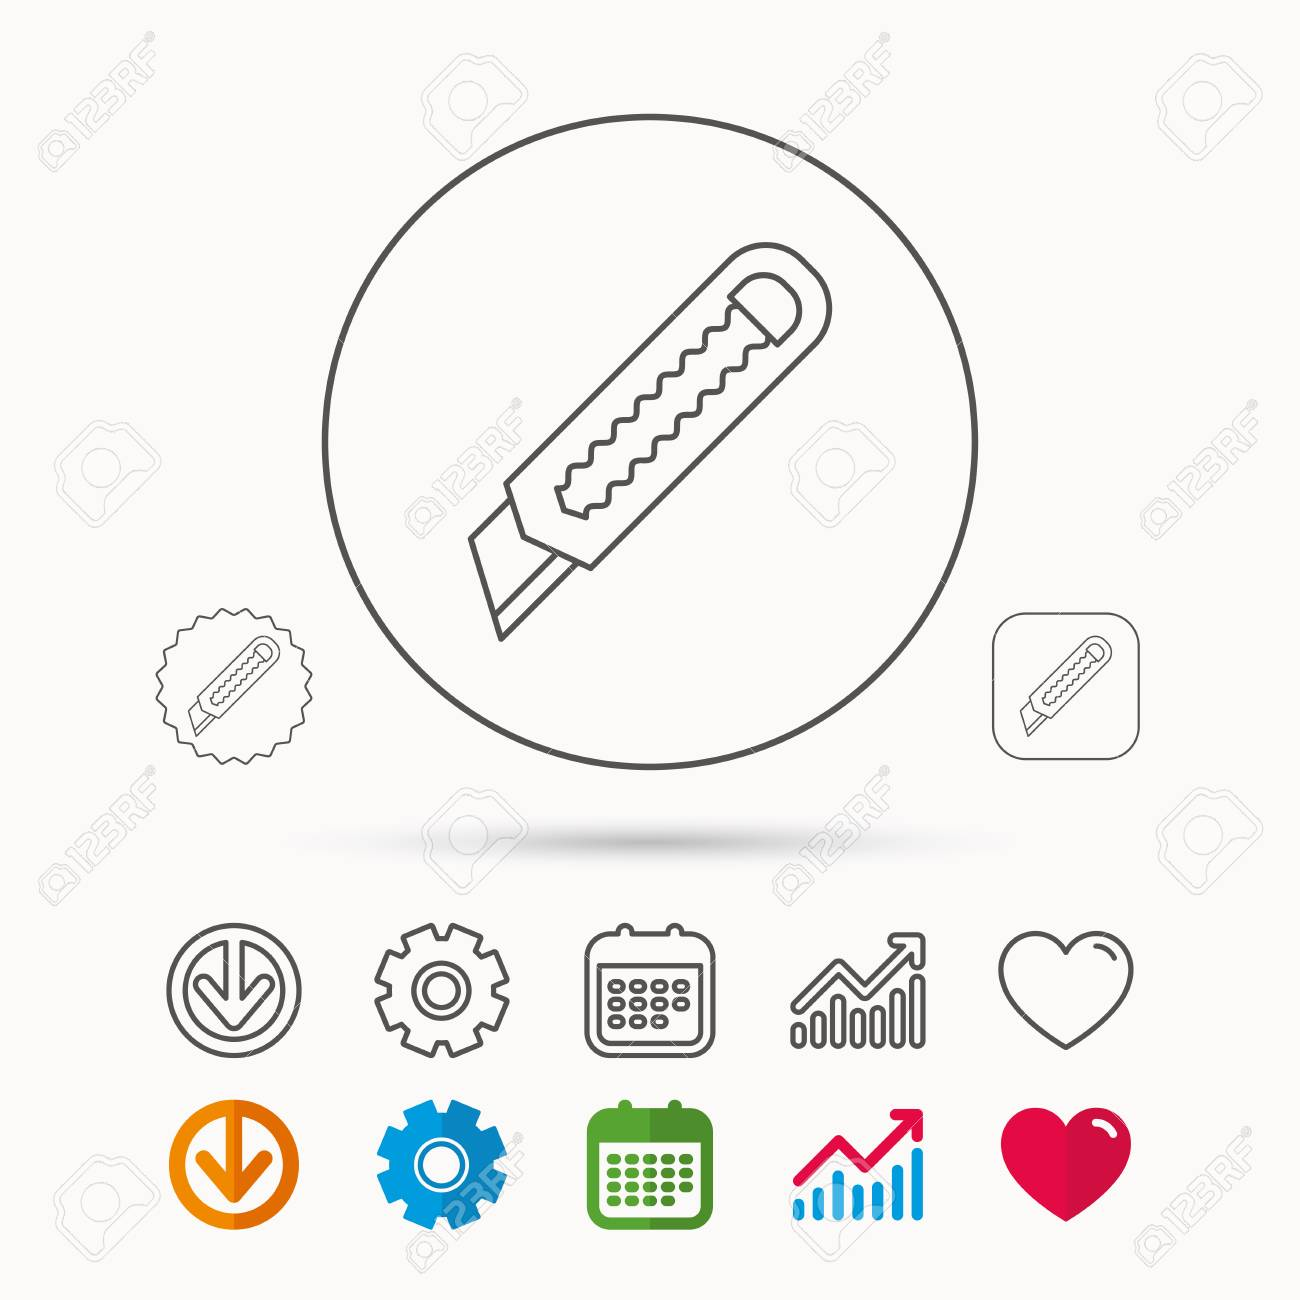 paper knife icon cutter tool sign calendar graph chart and